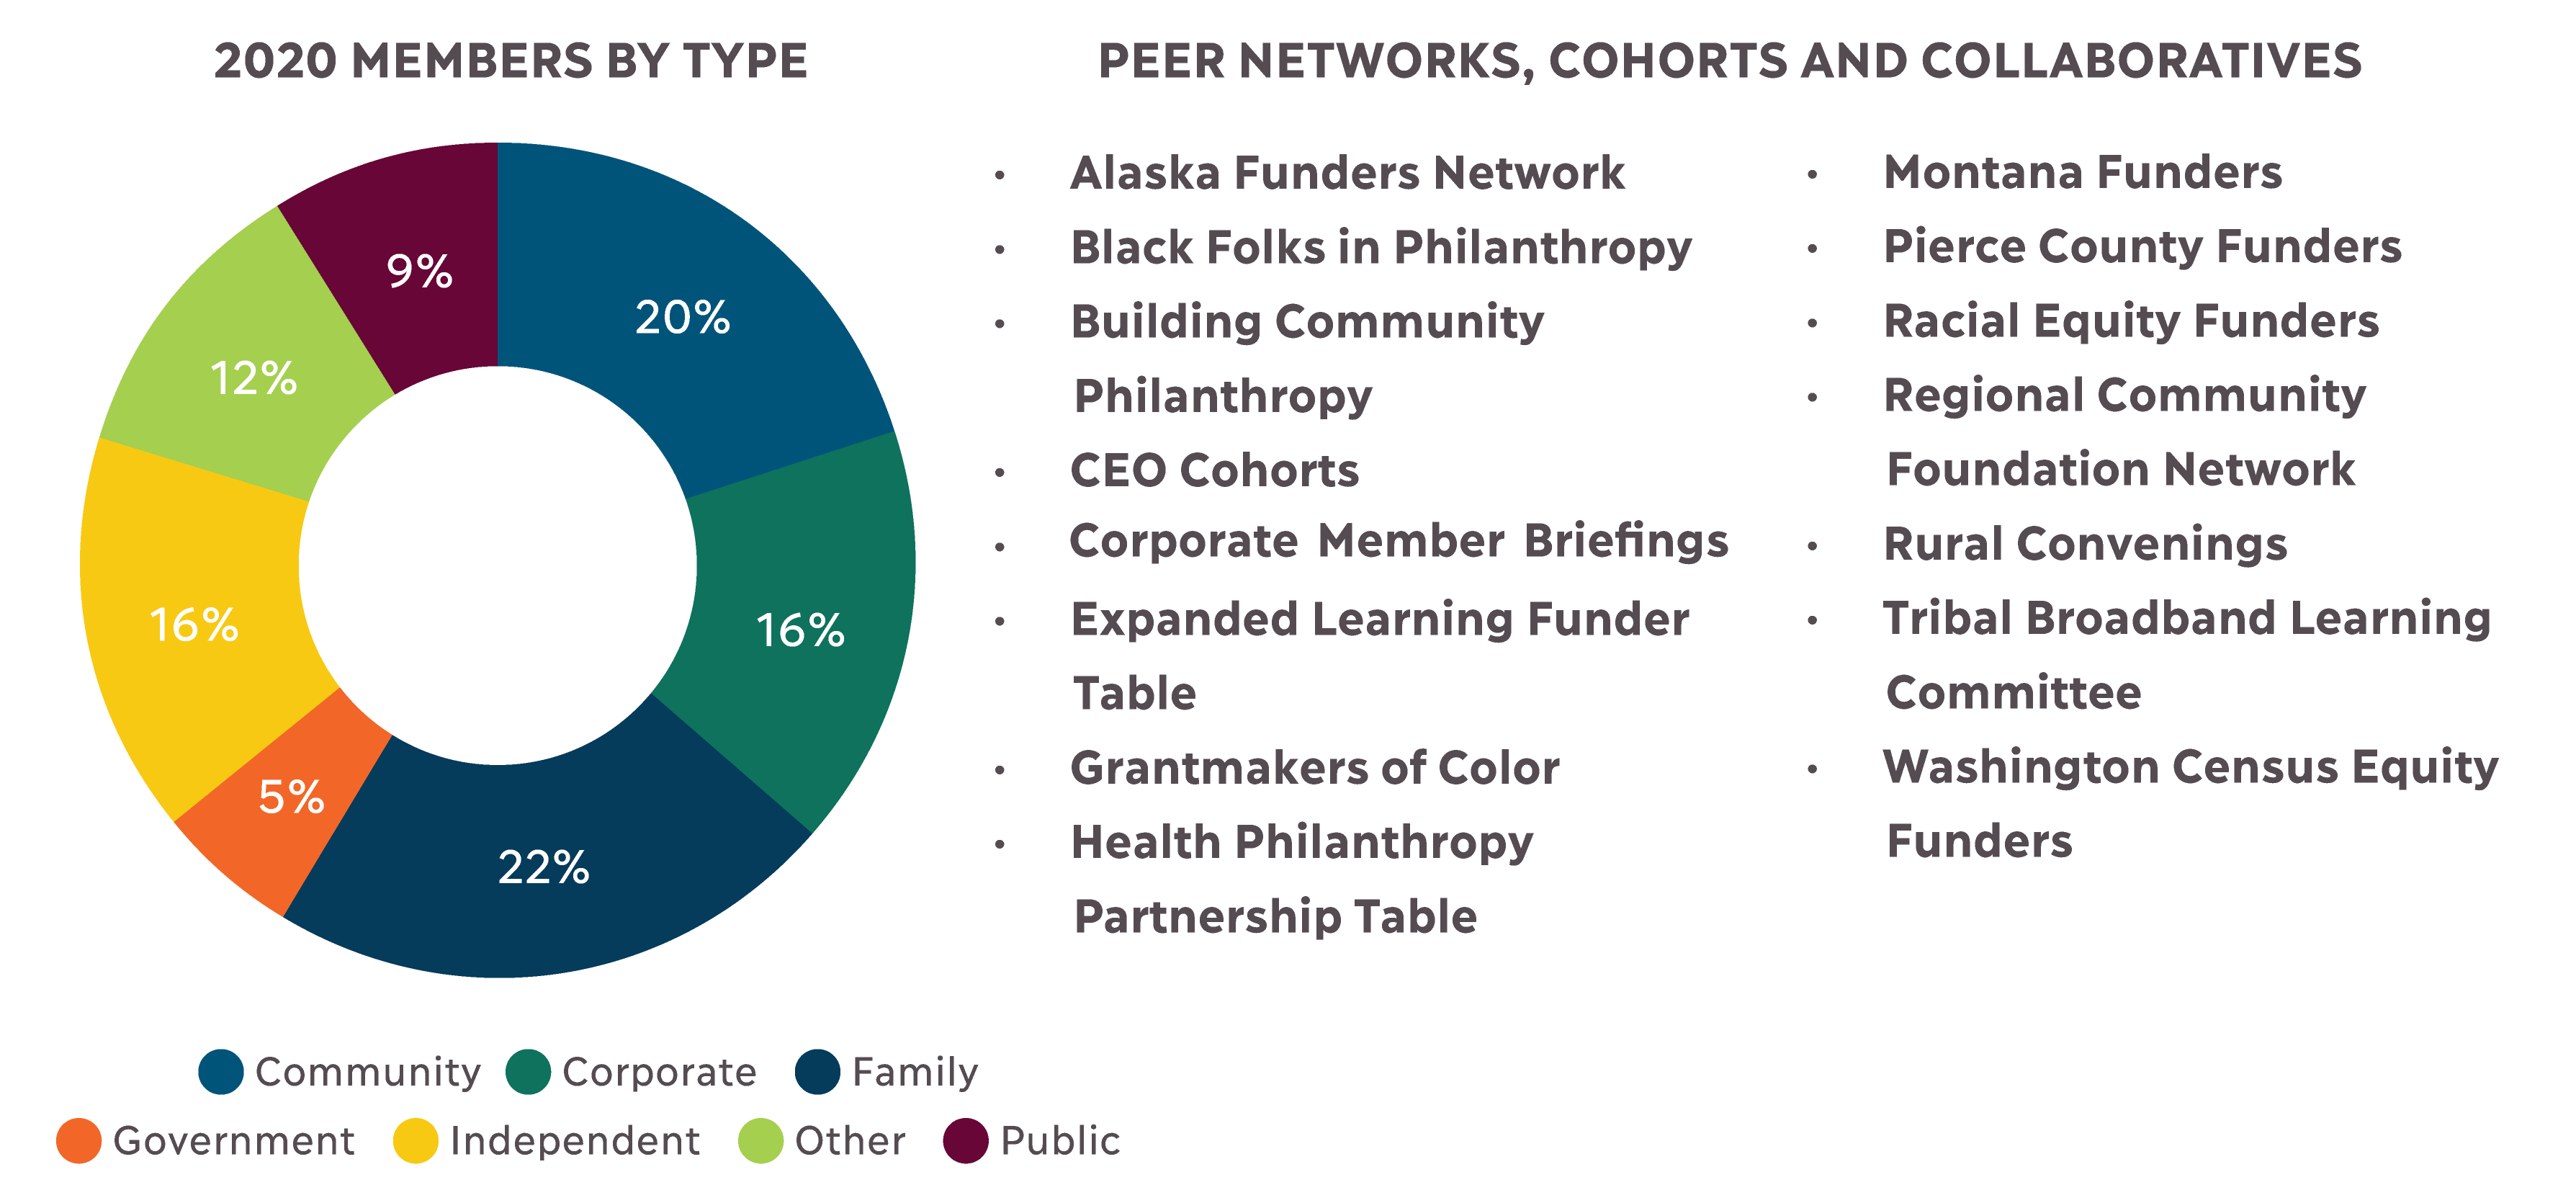 A donut graph of PNW 2020 members by type showing 20% Community foundations; 16% Corporate foundations; 22% Family foundations; 5% Government; 16% Independent foundations; 12% Other; and 9% Public. To the right of the graph is a list of peer networks, coh